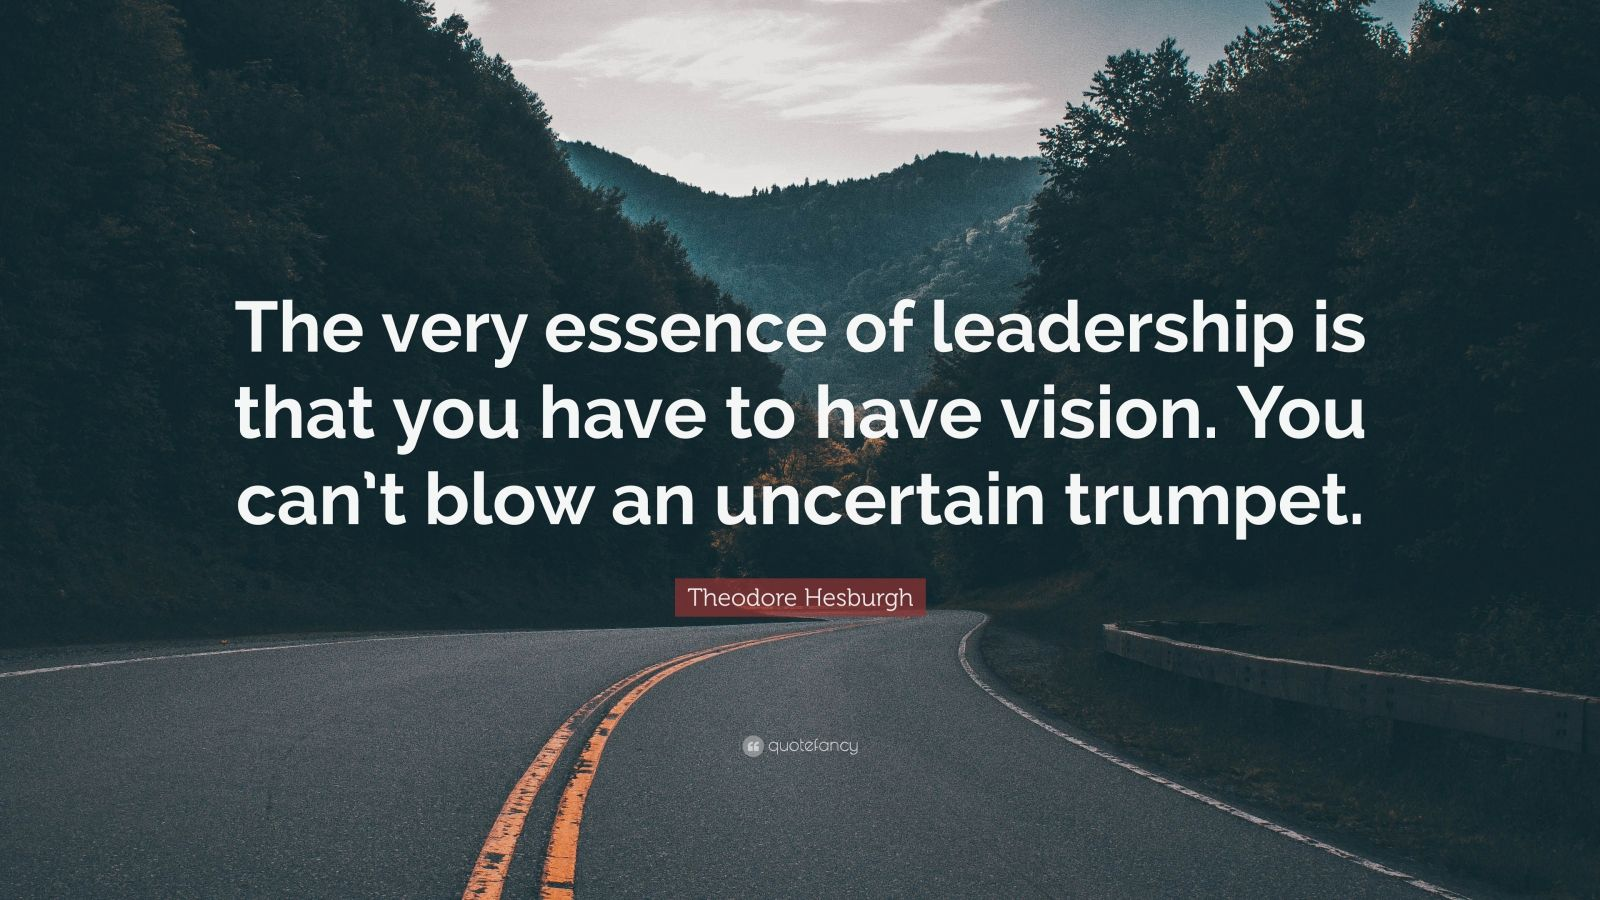 """Theodore Hesburgh Quote: """"The very essence of leadership is that you have to have vision. You can't blow an uncertain trumpet."""""""